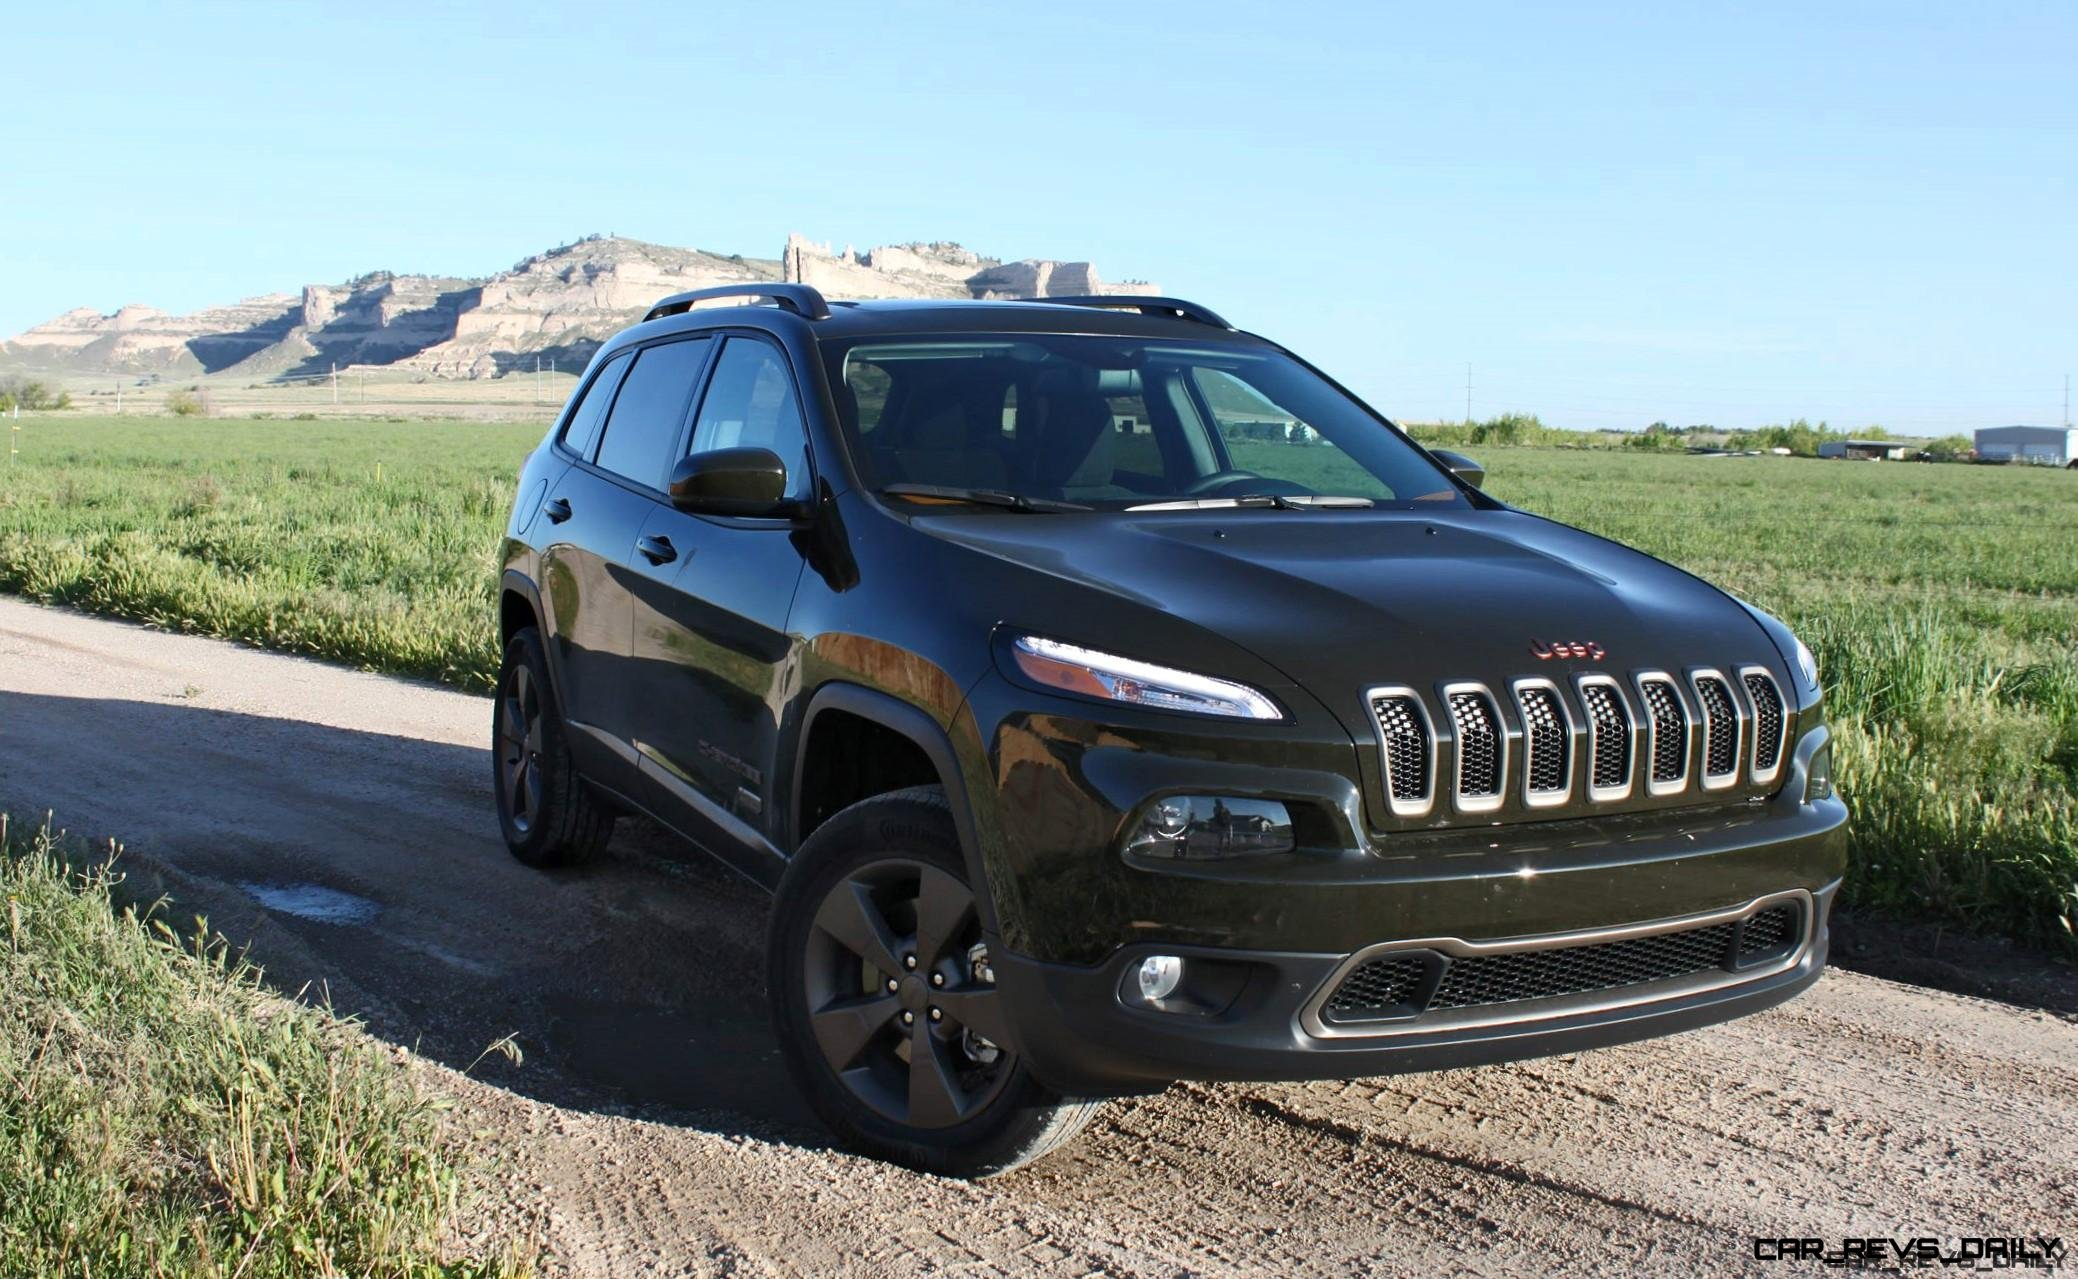 2016 Jeep Cherokee Exterior 4x45 75th Anniversary Edition 6